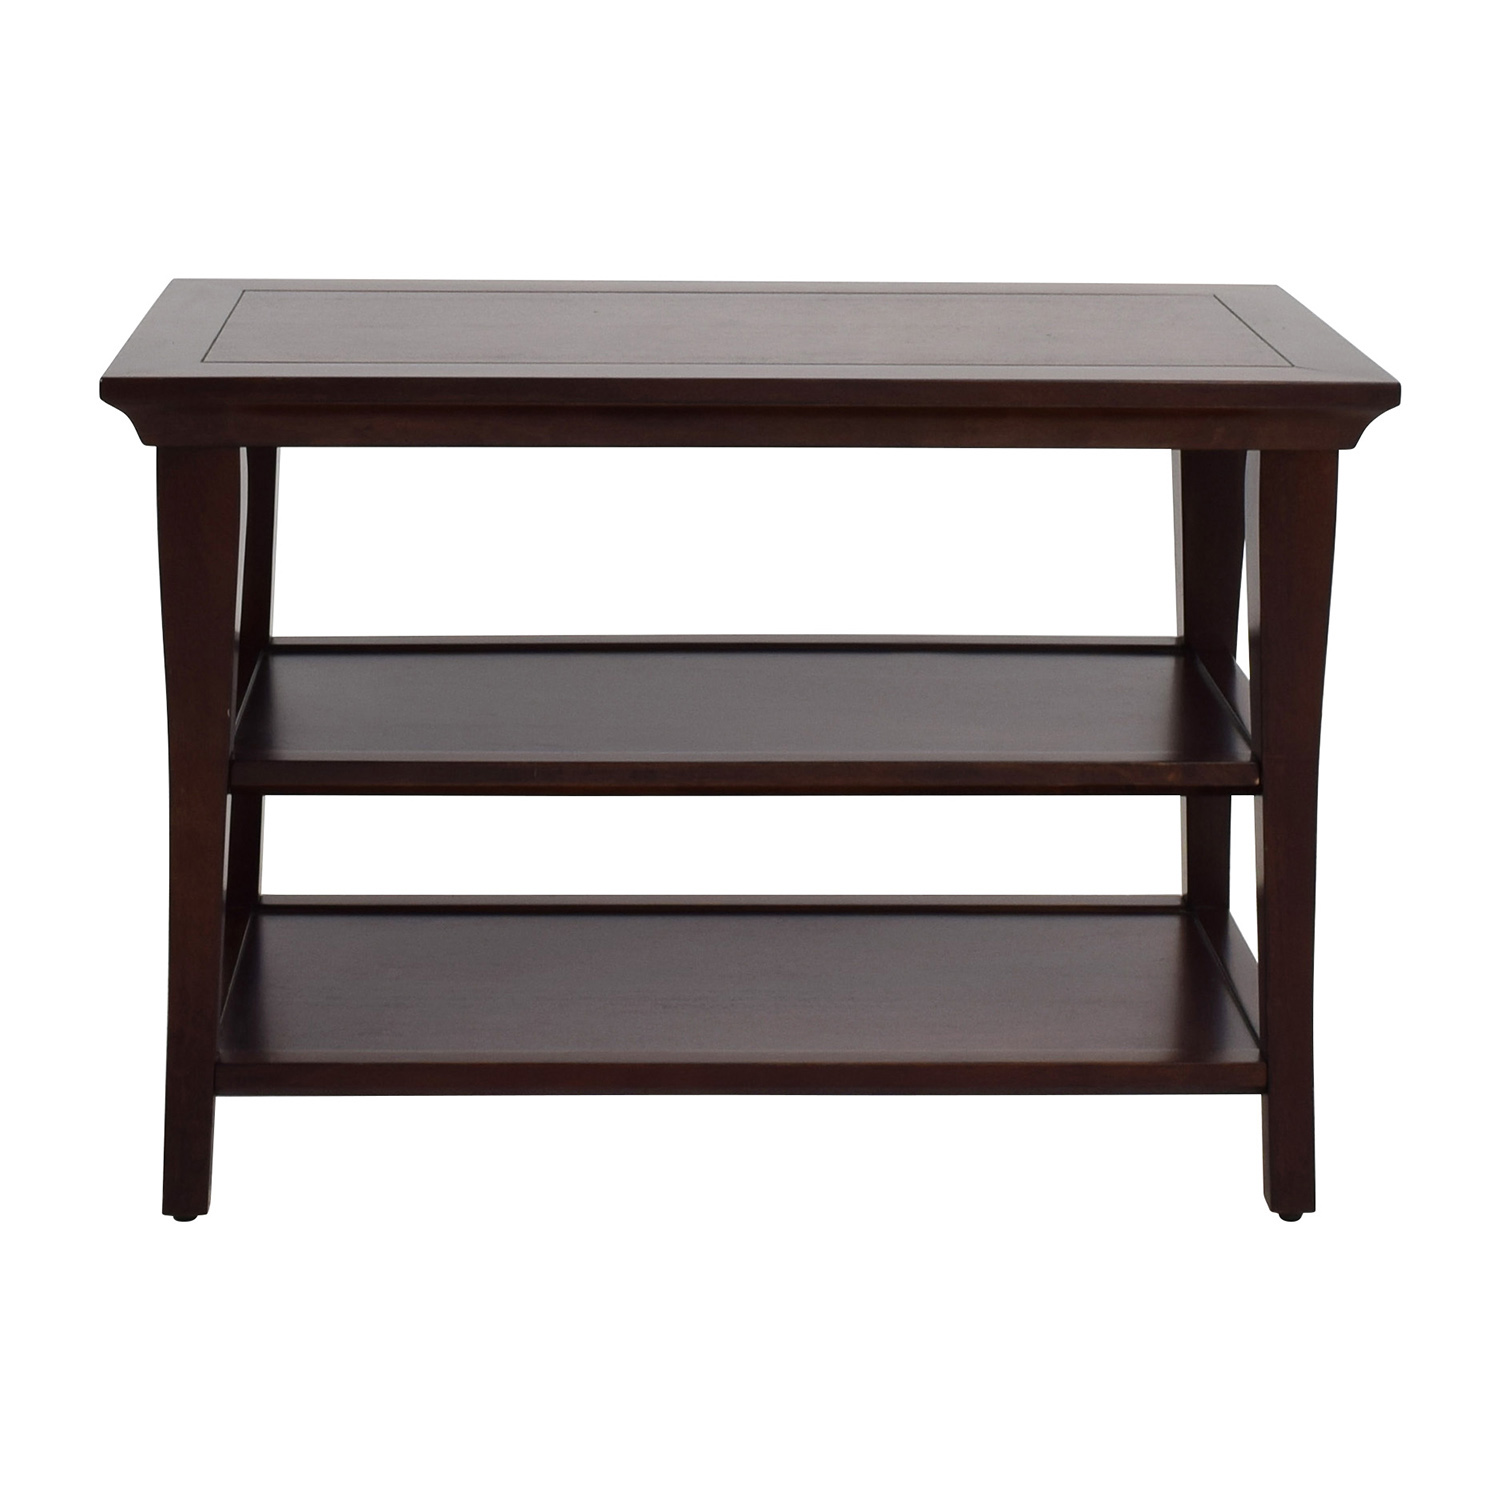 36% OFF Crate & Barrel Crate & Barrel Console Table Tables